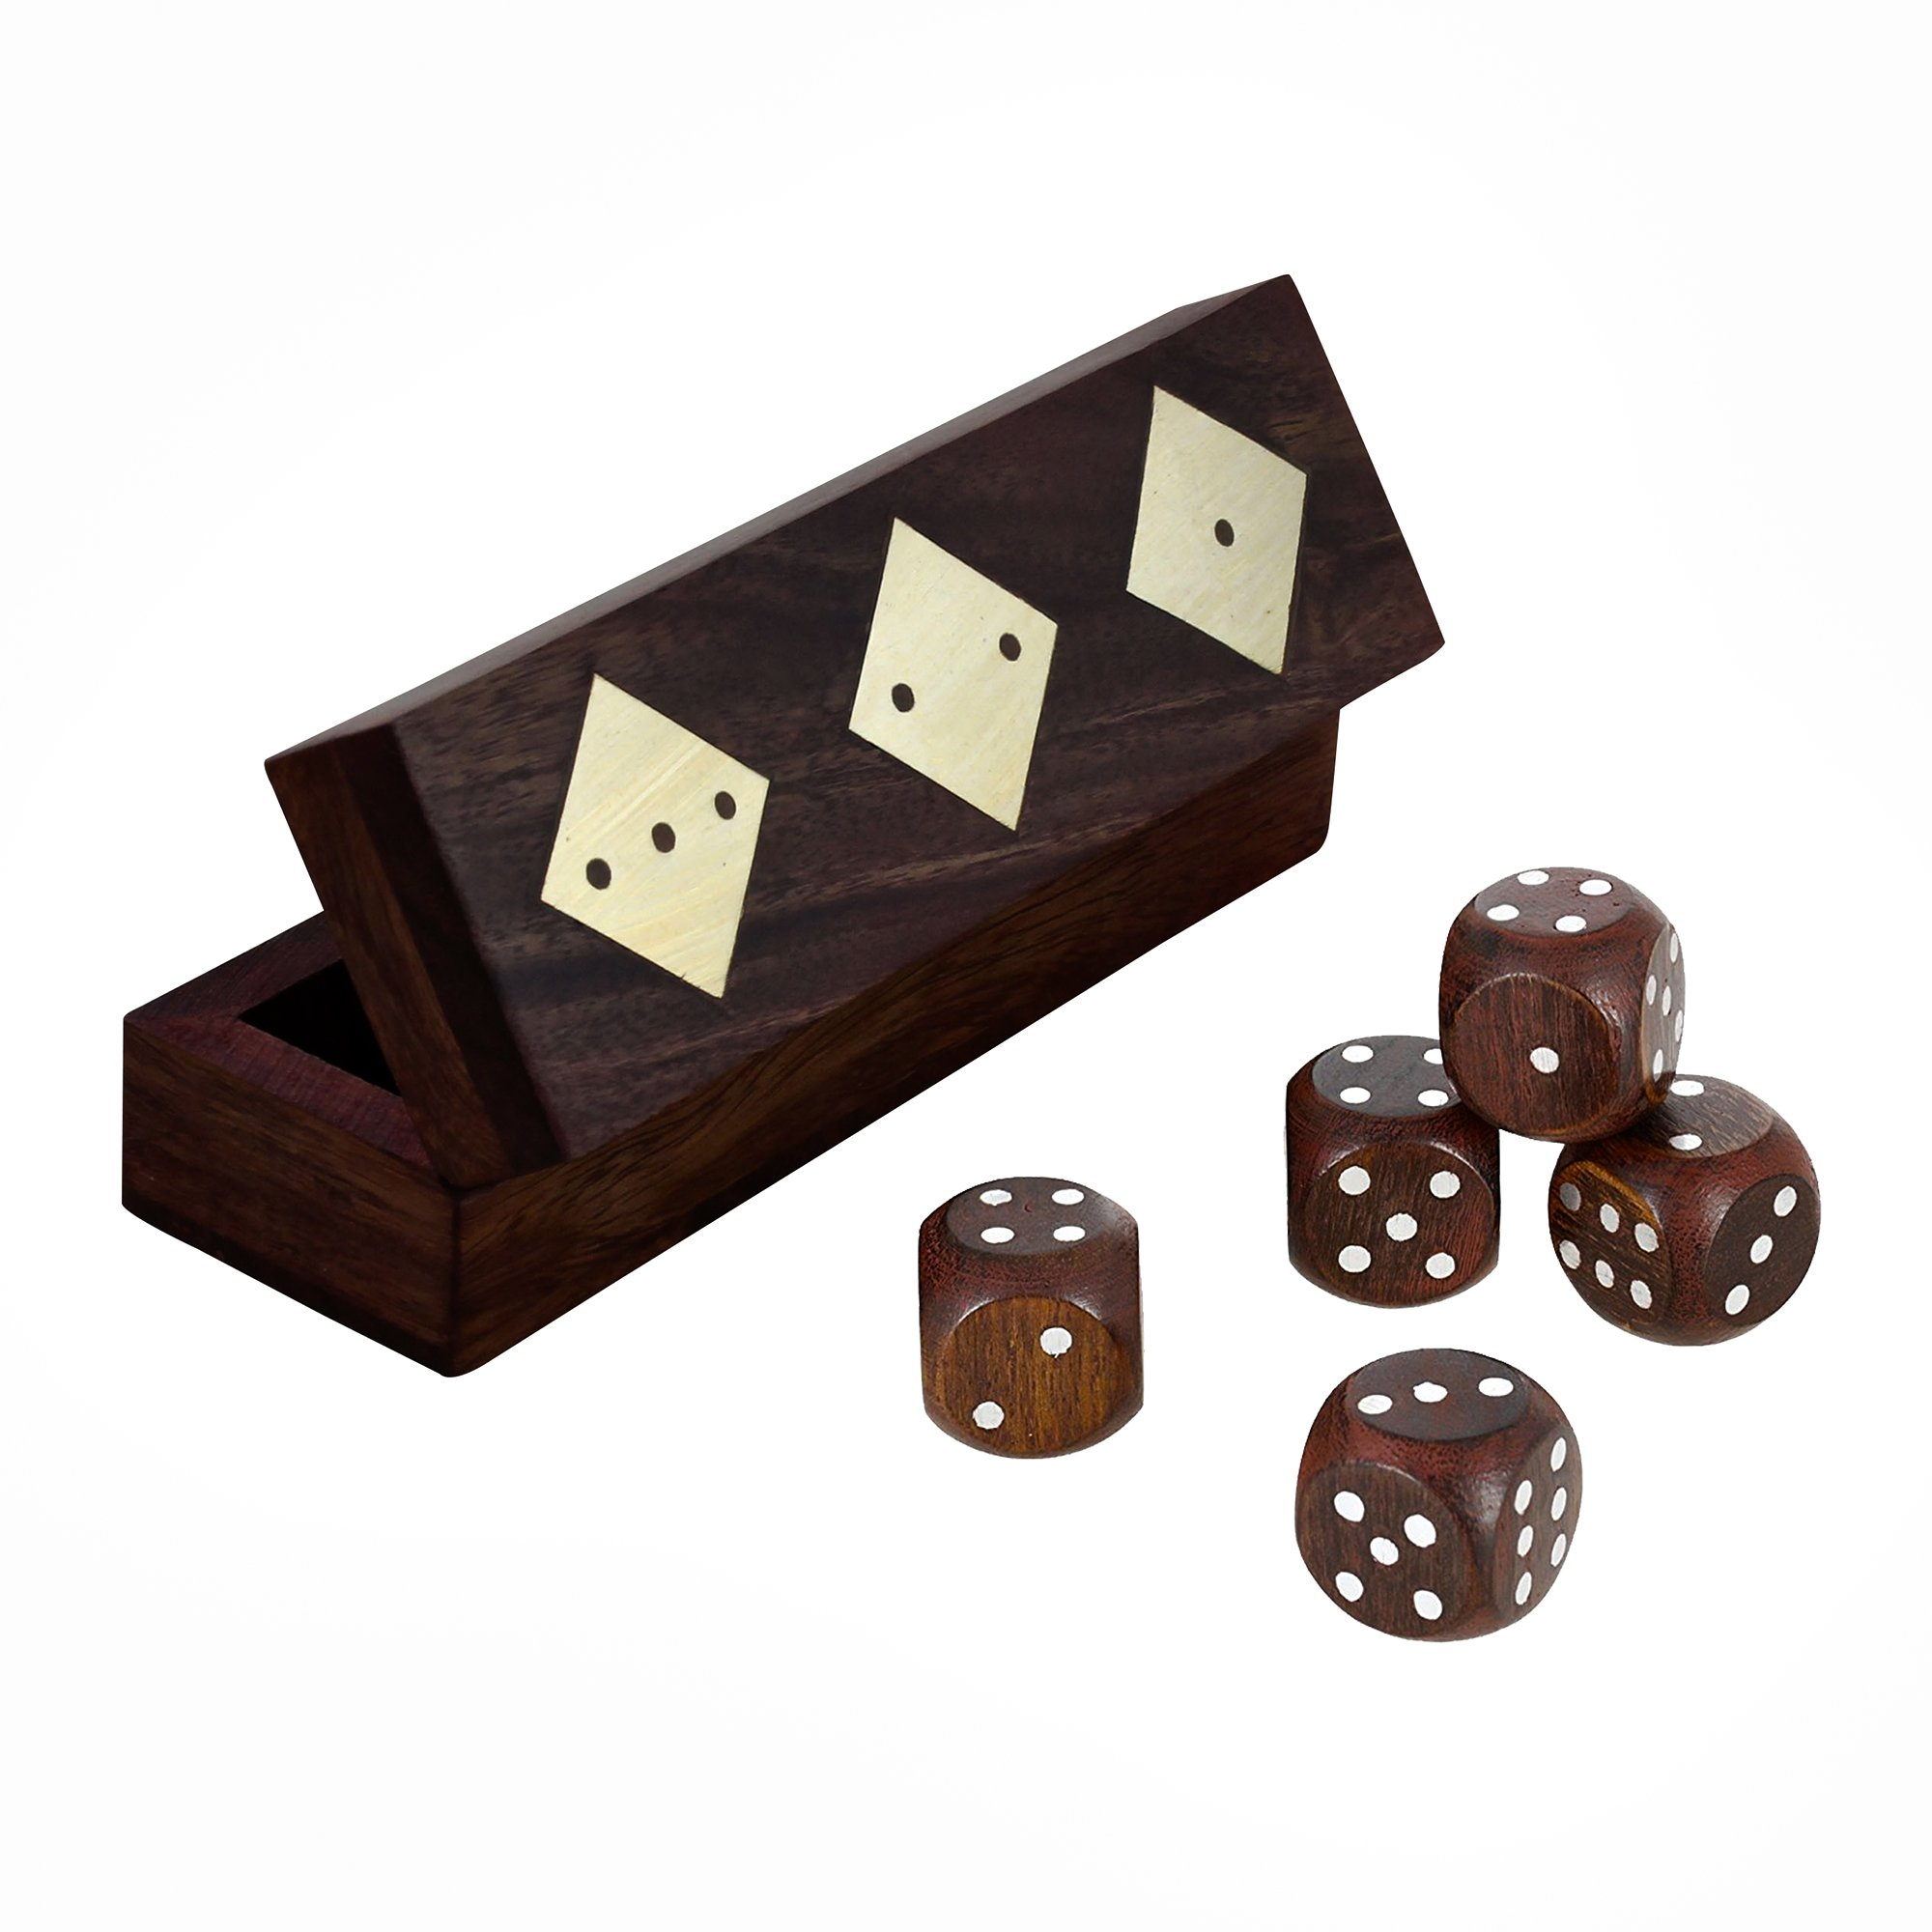 RoyaltyRoute 5 Dices Game Set Brass Inlay Designed Box - Kids Toys Games, Set of 12